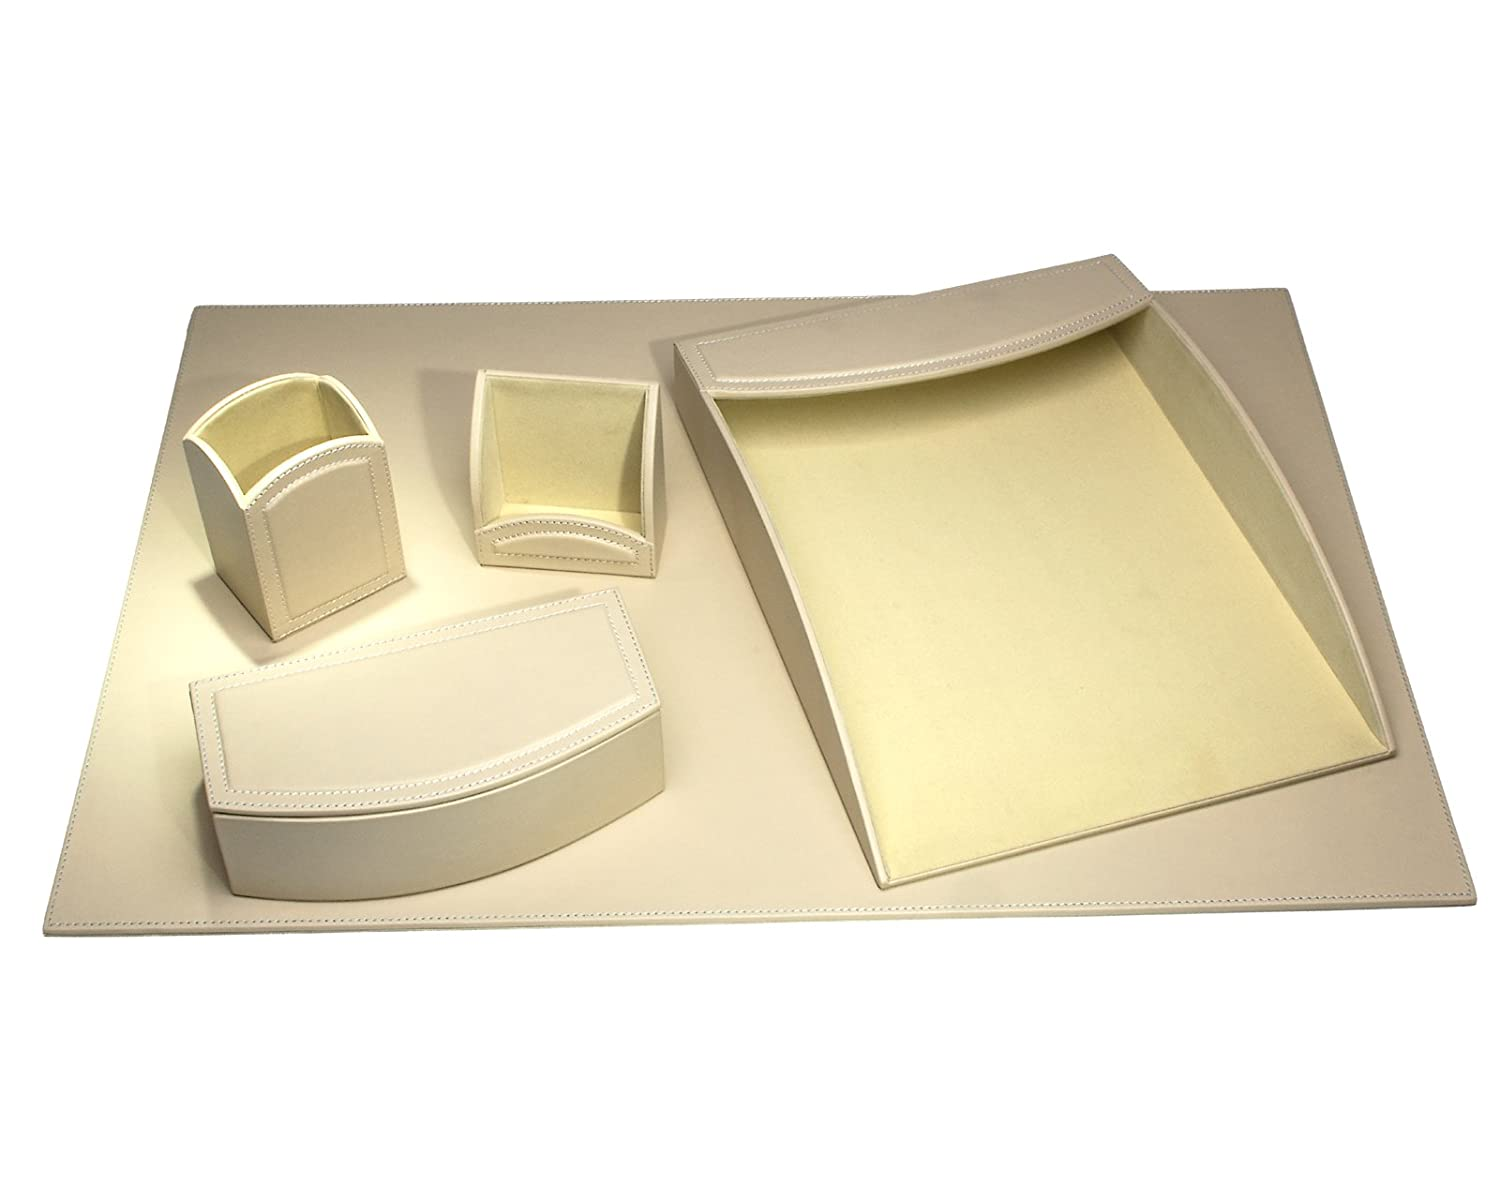 Dacasso Office Organizing Desk Set, Sandy Tan, Pezzi D6065